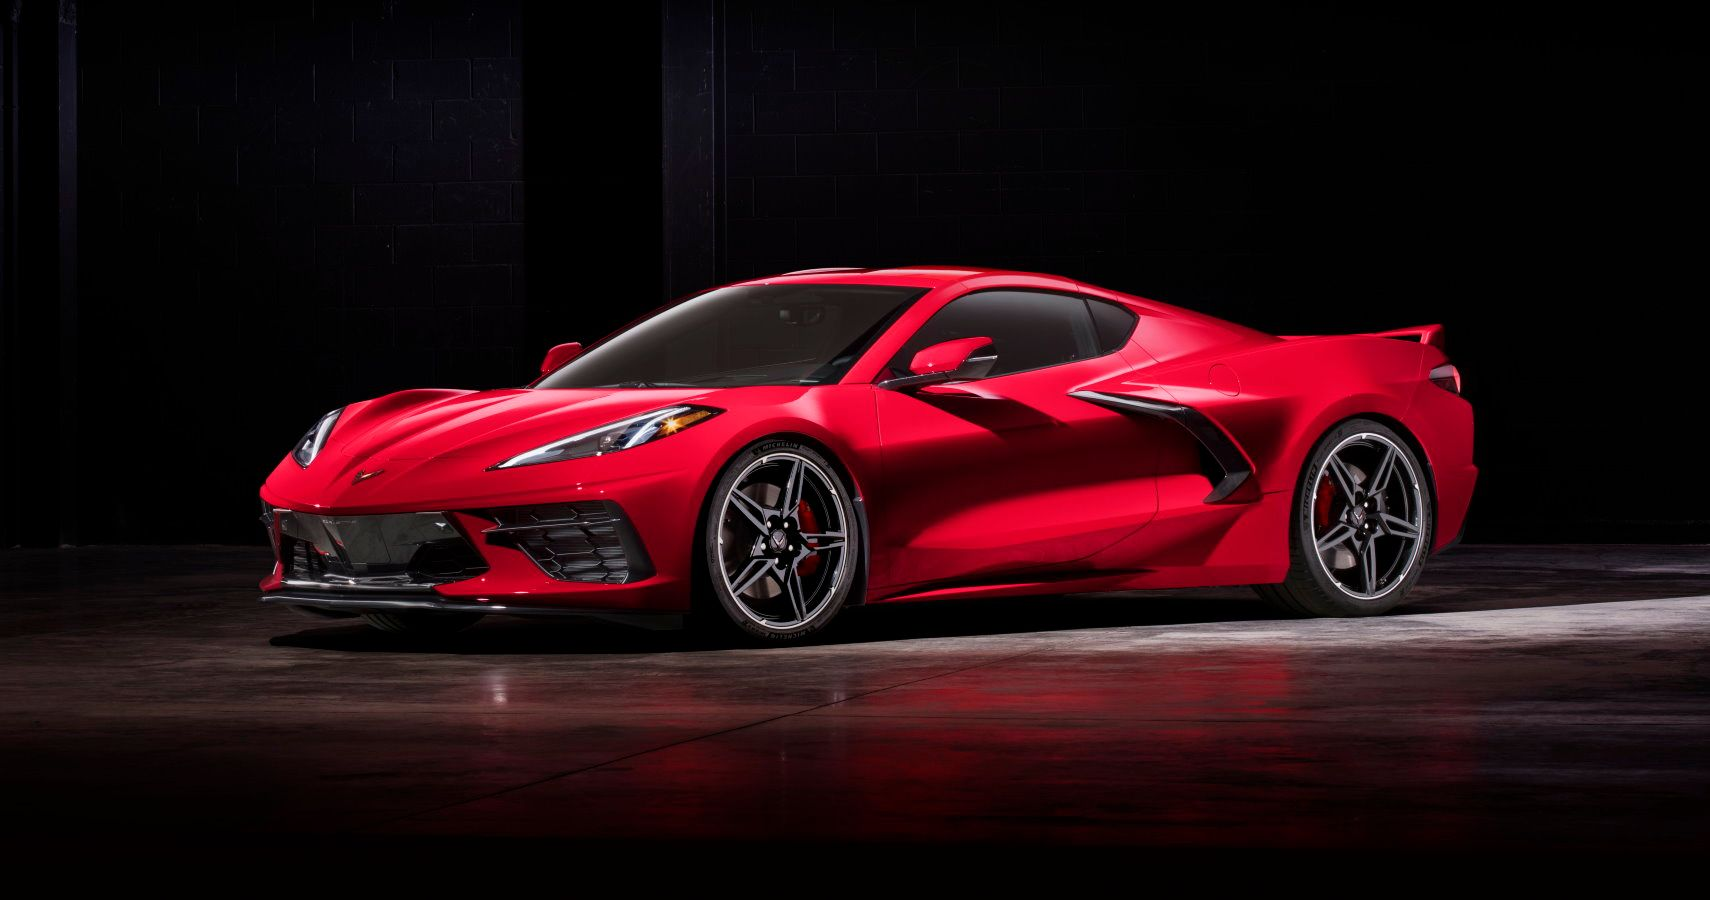 2020 Corvette Stingray Technically Cheaper In Canada | HotCars